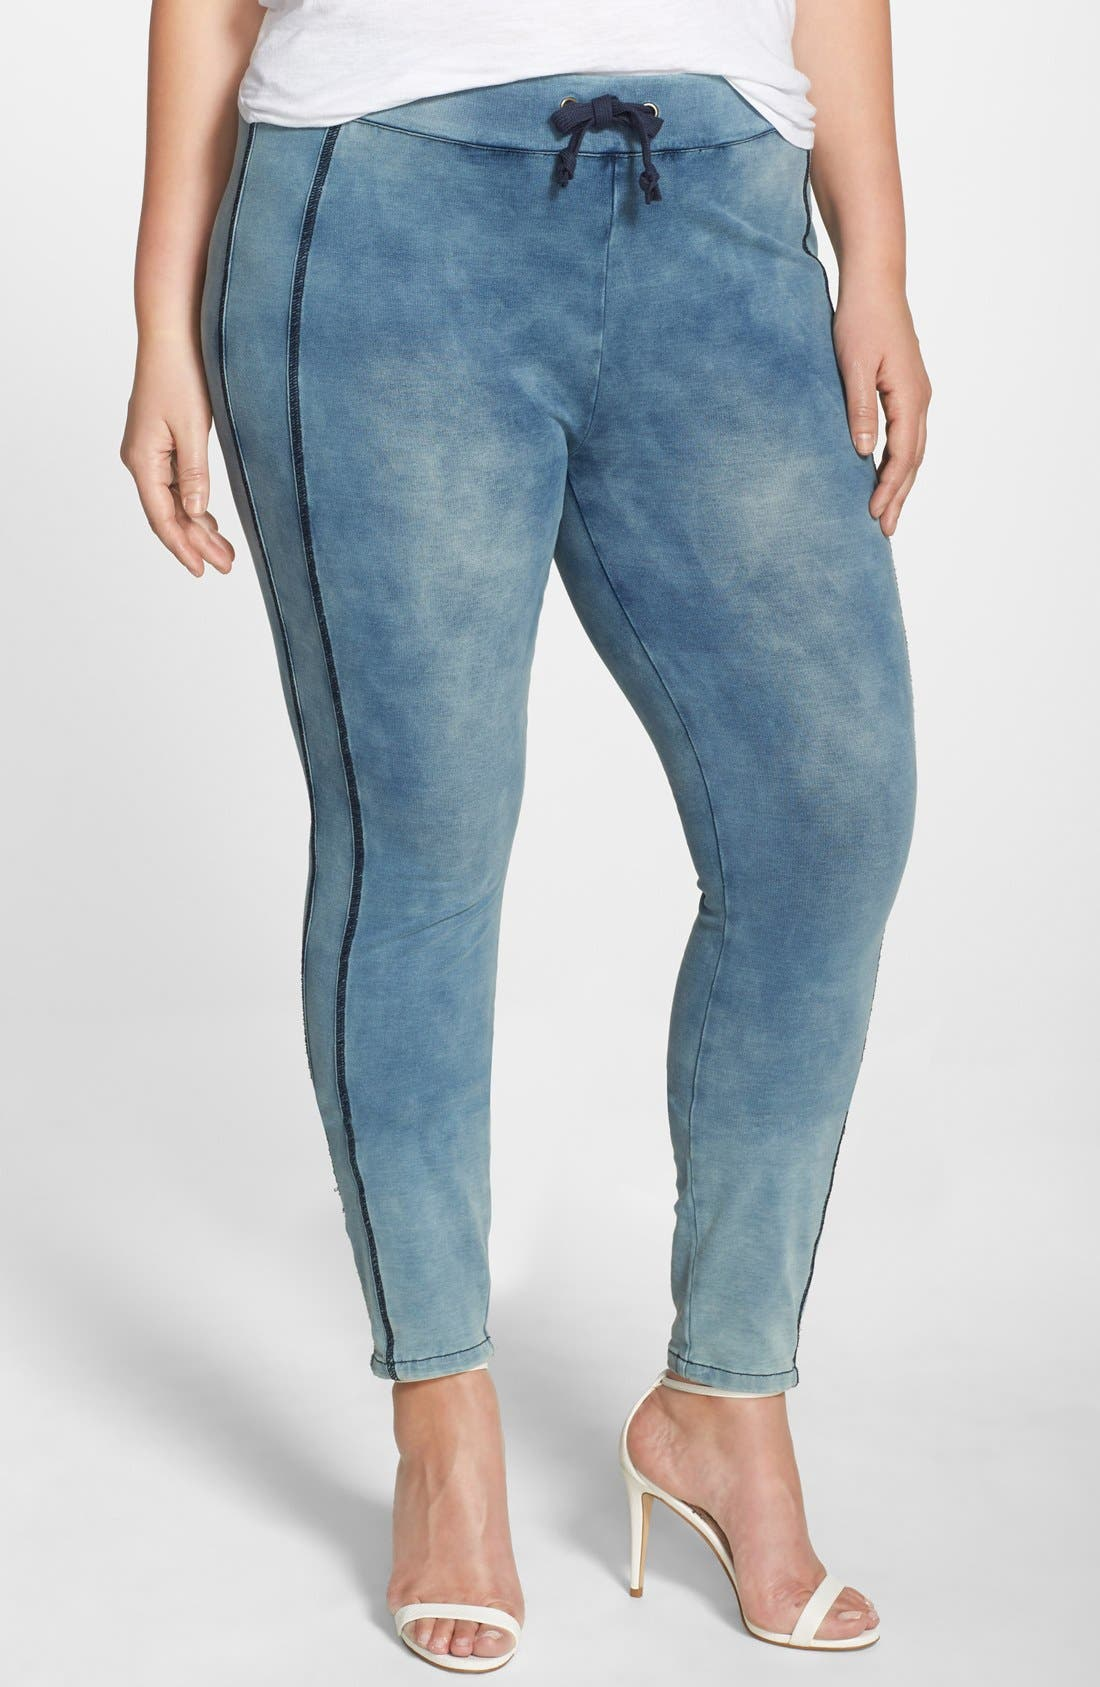 Alternate Image 1 Selected - Poetic Justice 'Naomi' Stretch Knit Denim Jogger Pants (Plus Size)